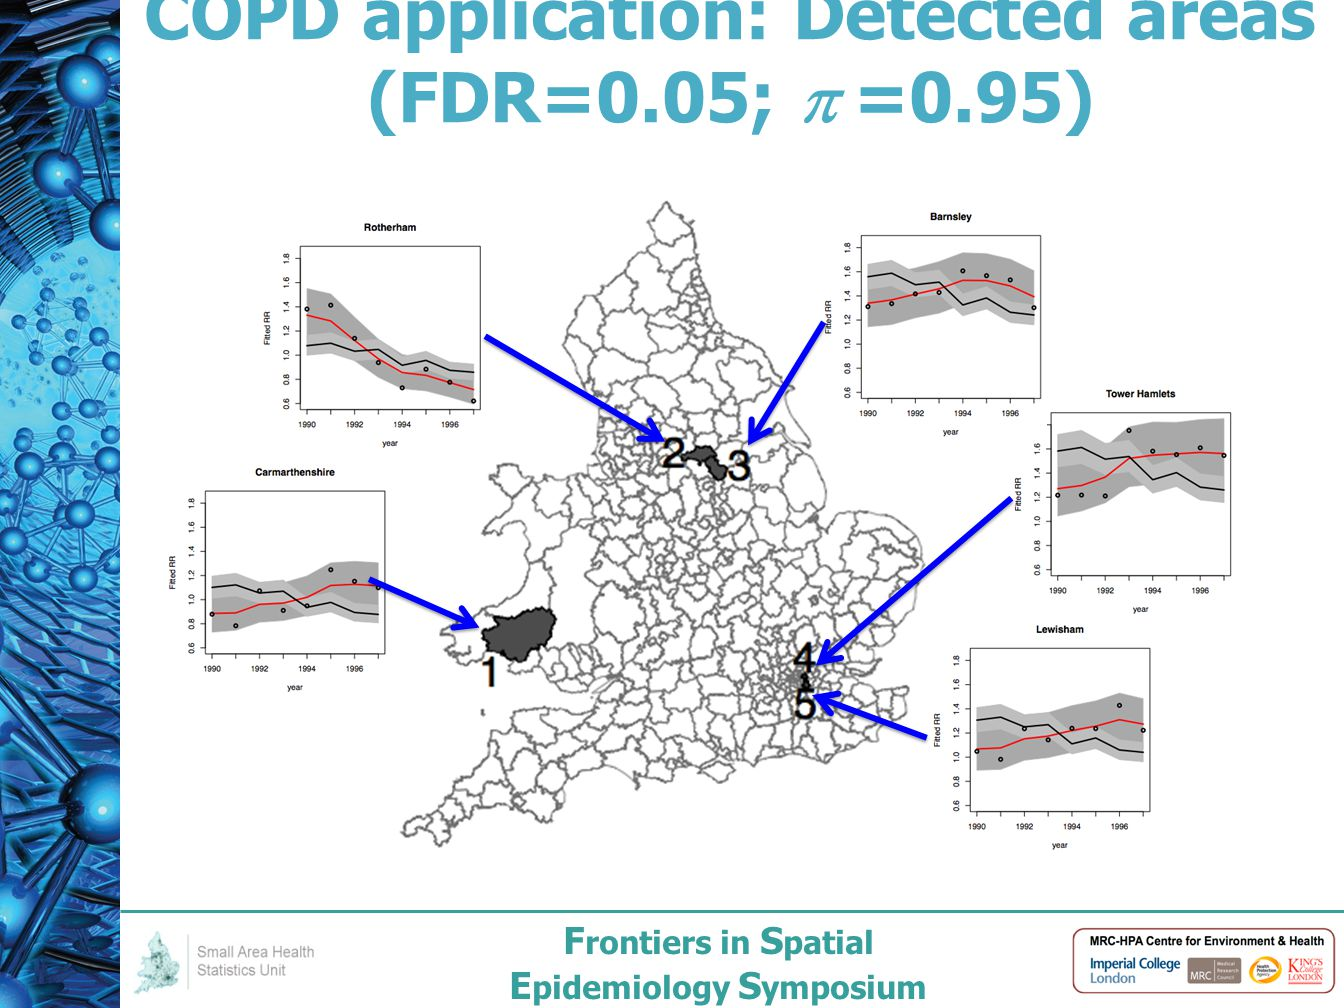 F rontiers in S patial E pidemiology S ymposium COPD application: Detected areas (FDR=0.05;  =0.95)